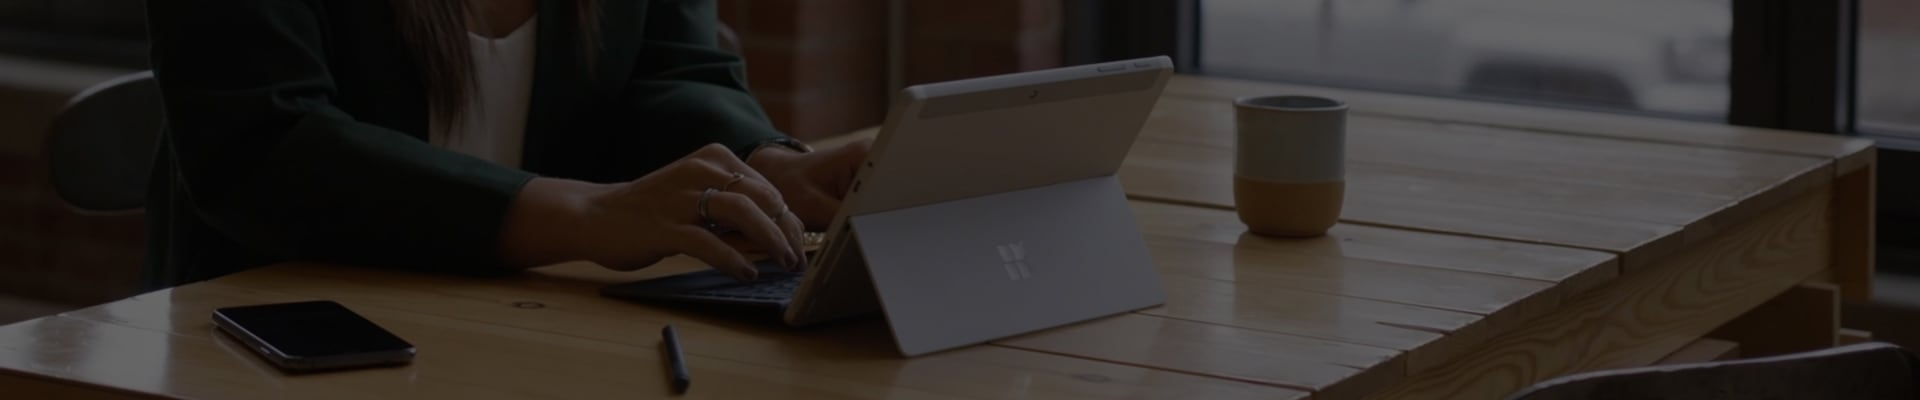 Darkened image of a person using a Surface Pro in laptop mode.